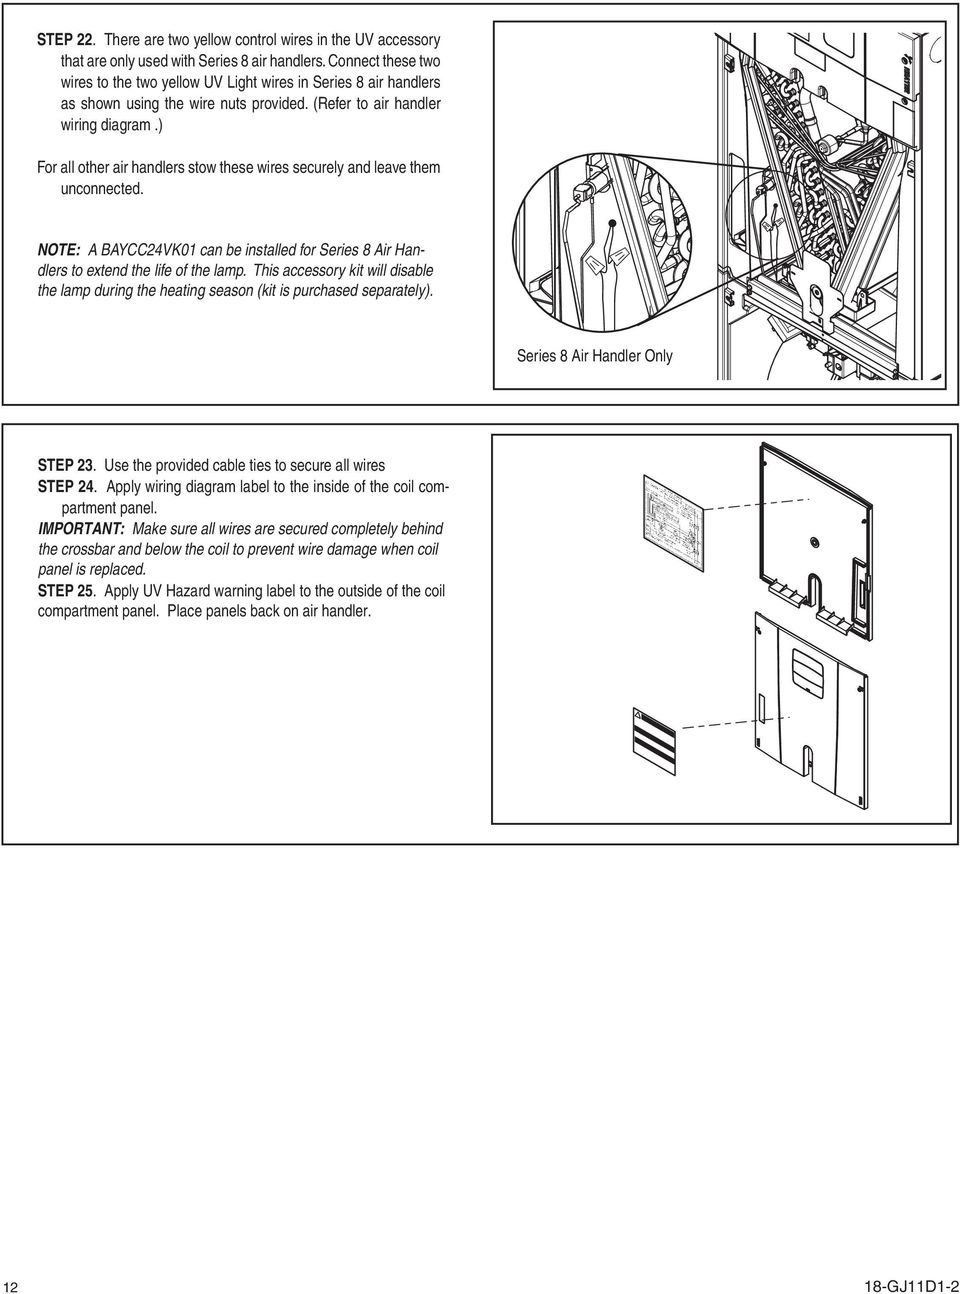 Installer S Guide Warning 18 Gj11d1 2 Ultraviolet Uv C Lamp Kit Daytime Running Lights Wiring Diagram Also Harley Davidson Forty Eight For All Other Air Handlers Stow These Wires Securely And Leave Them Unconnected Br